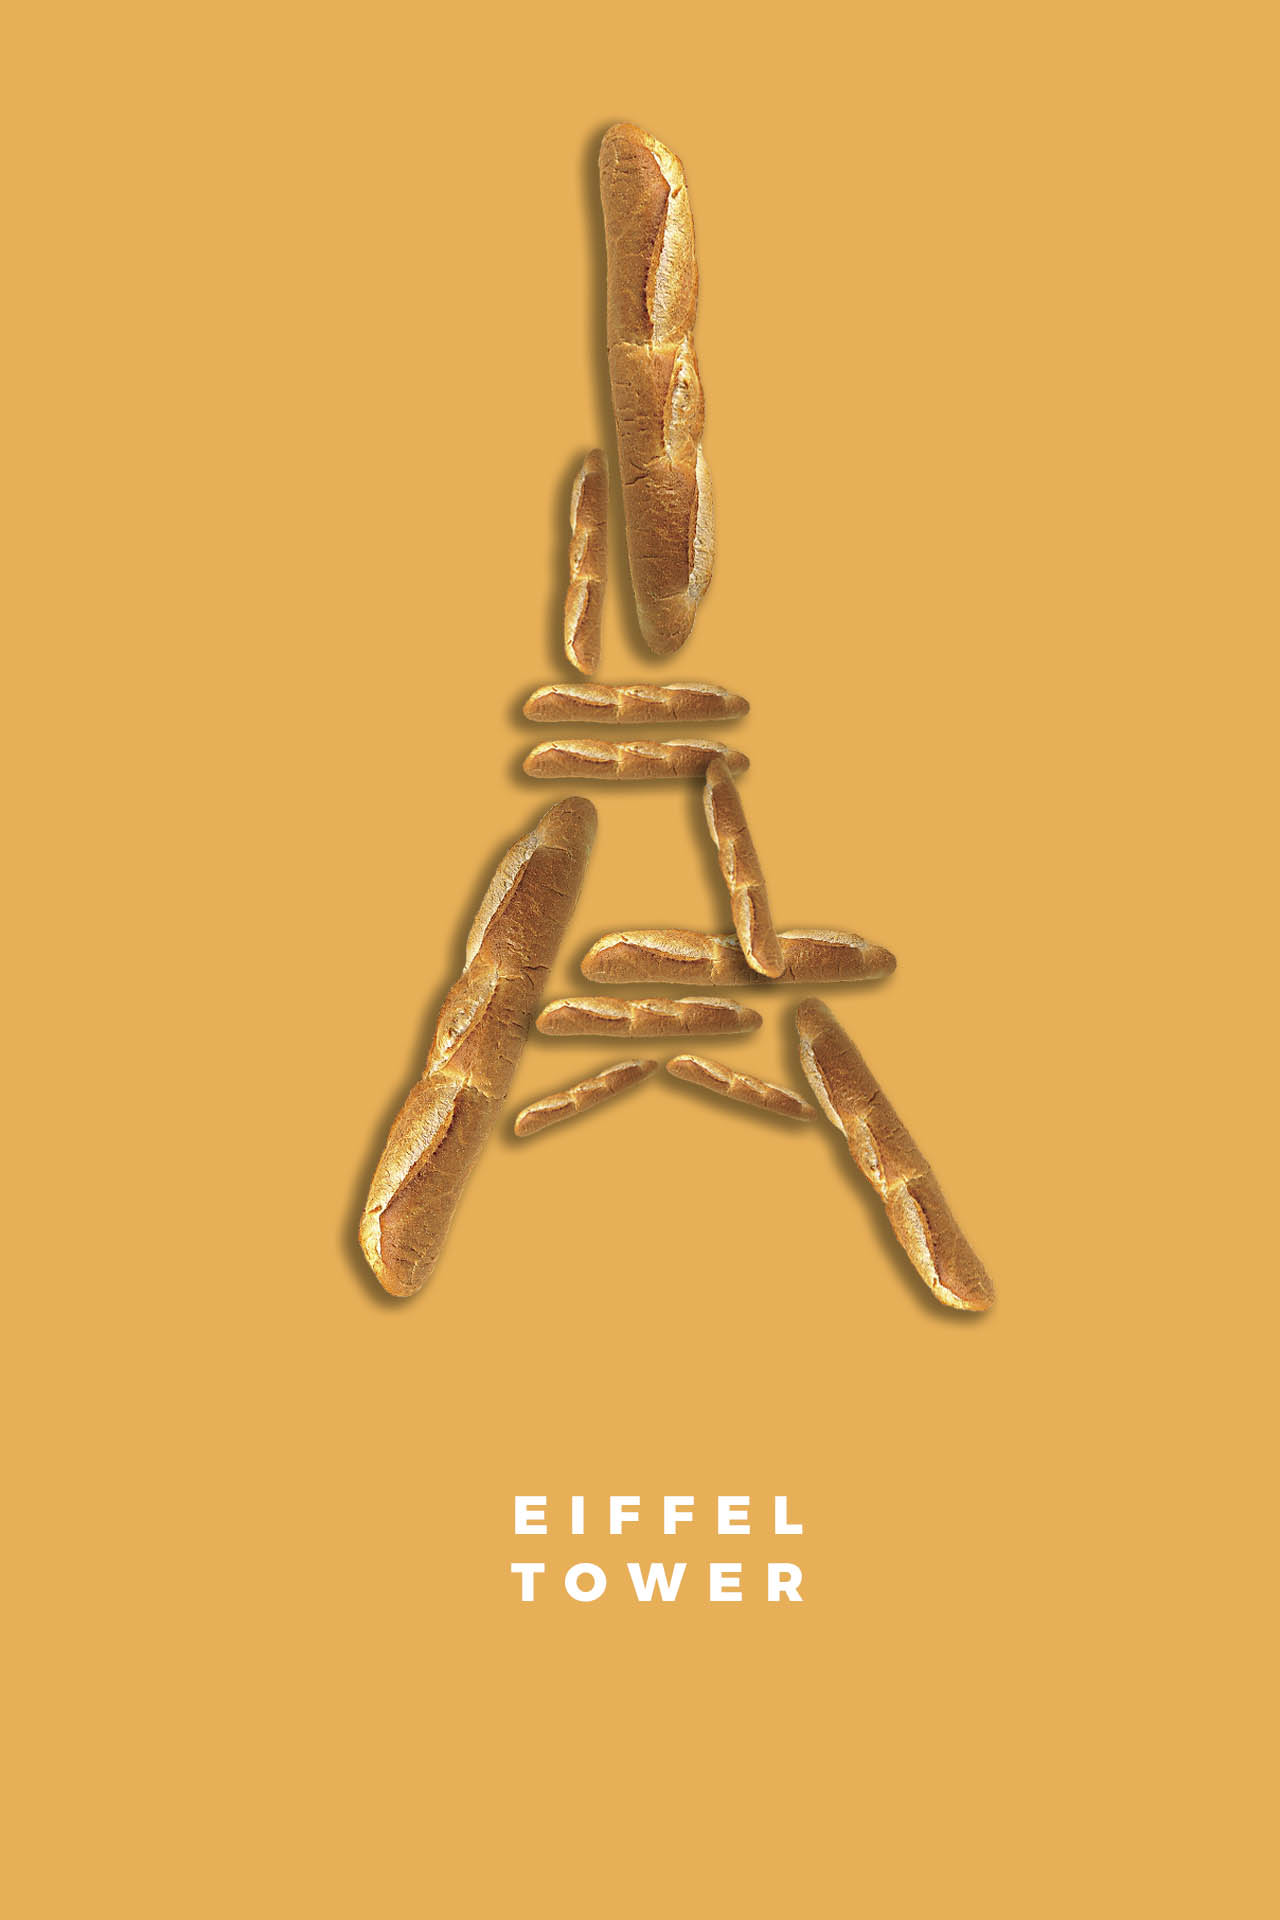 Eiffel Tower in Paris France baguette food illustration